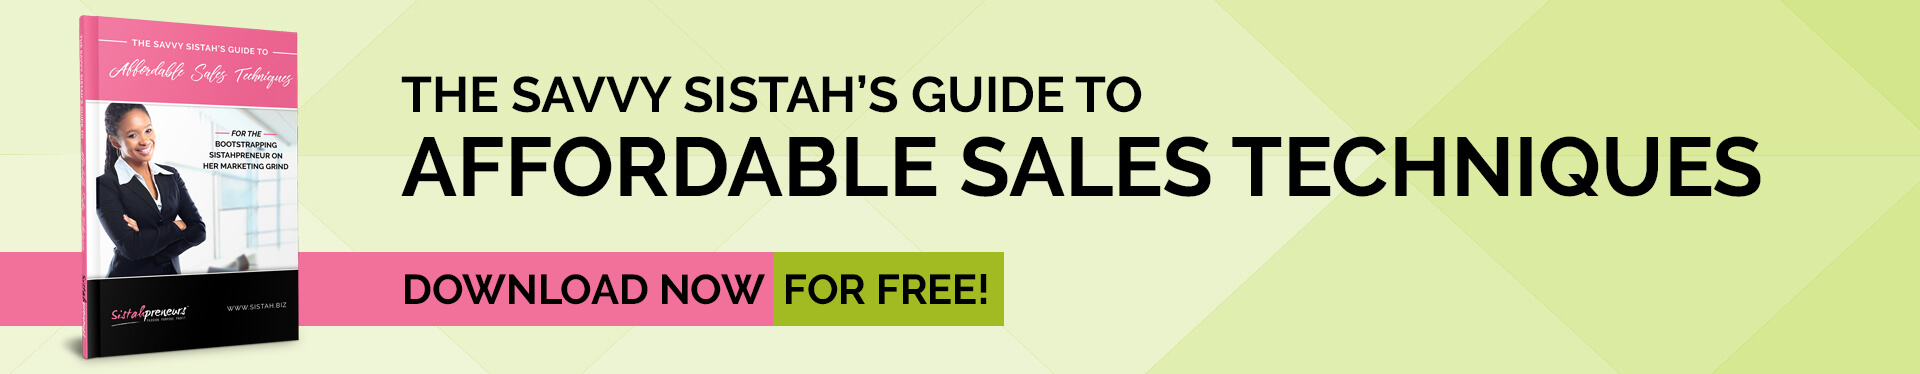 Get The Savvy Sistah's Guide to Affordable Sales Techniques